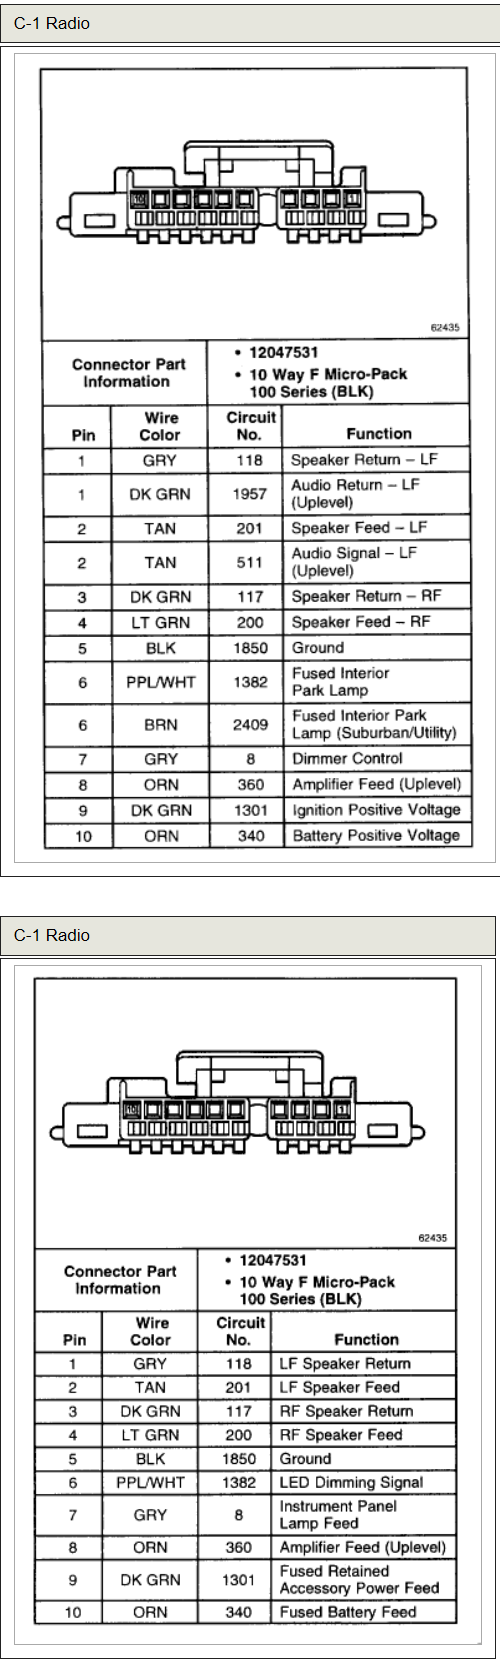 Chevrolet Car Radio Stereo Audio Wiring Diagram Autoradio Connector Harley Harness Furthermore Automotive Connectors Wire Installation Schematic Schema Esquema De Conexiones Anschlusskammern Konektor